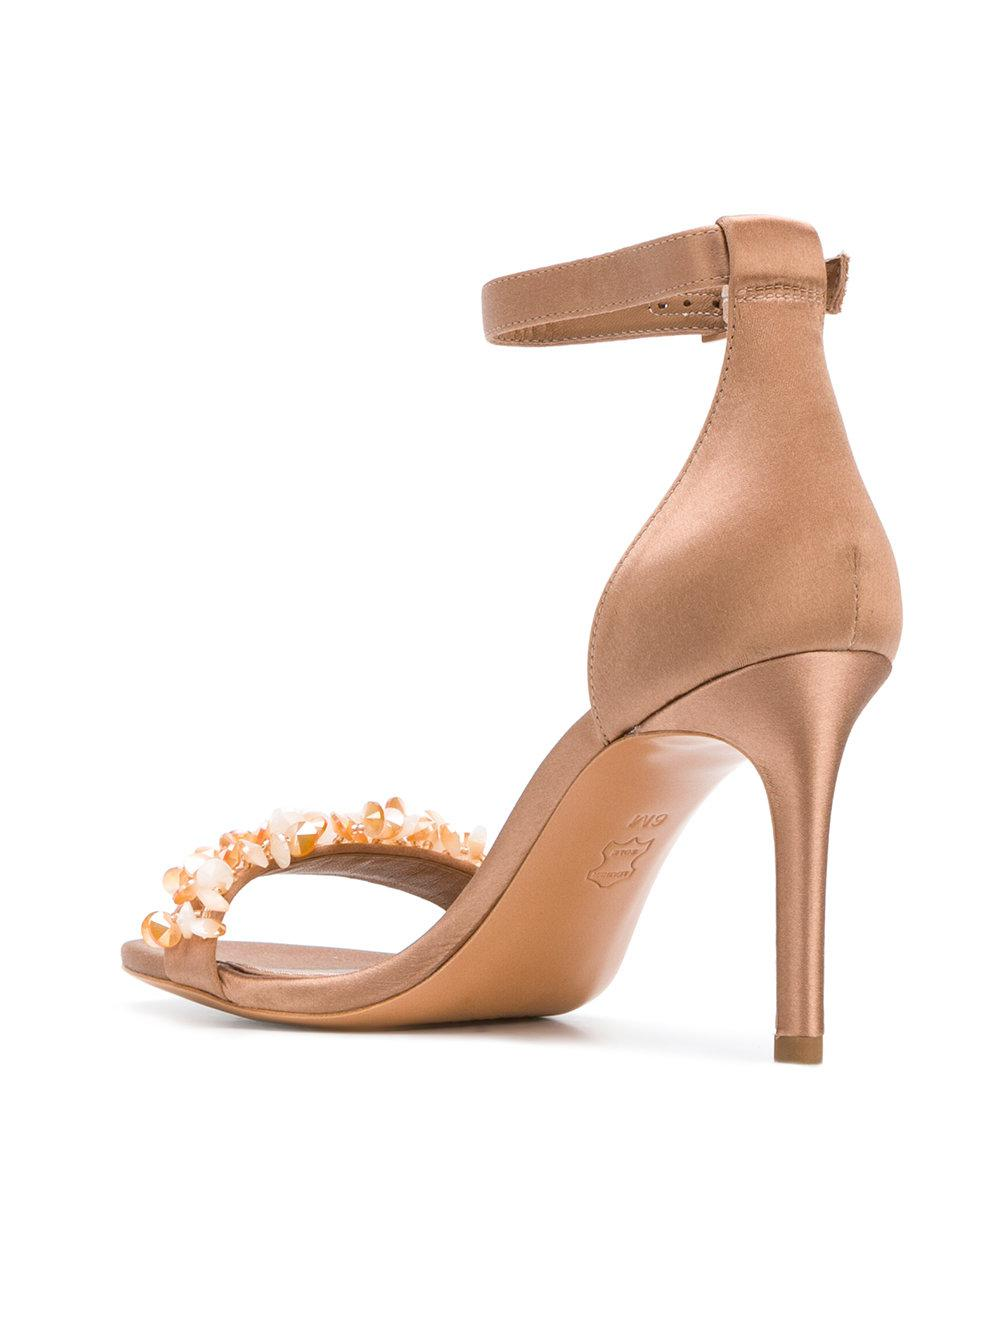 Outlet Choice Logan stiletto sandals - Pink & Purple Tory Burch Clearance Online Ebay Free Shipping Amazing Price Good Selling Low Shipping Fee Online OcgnG4CJ